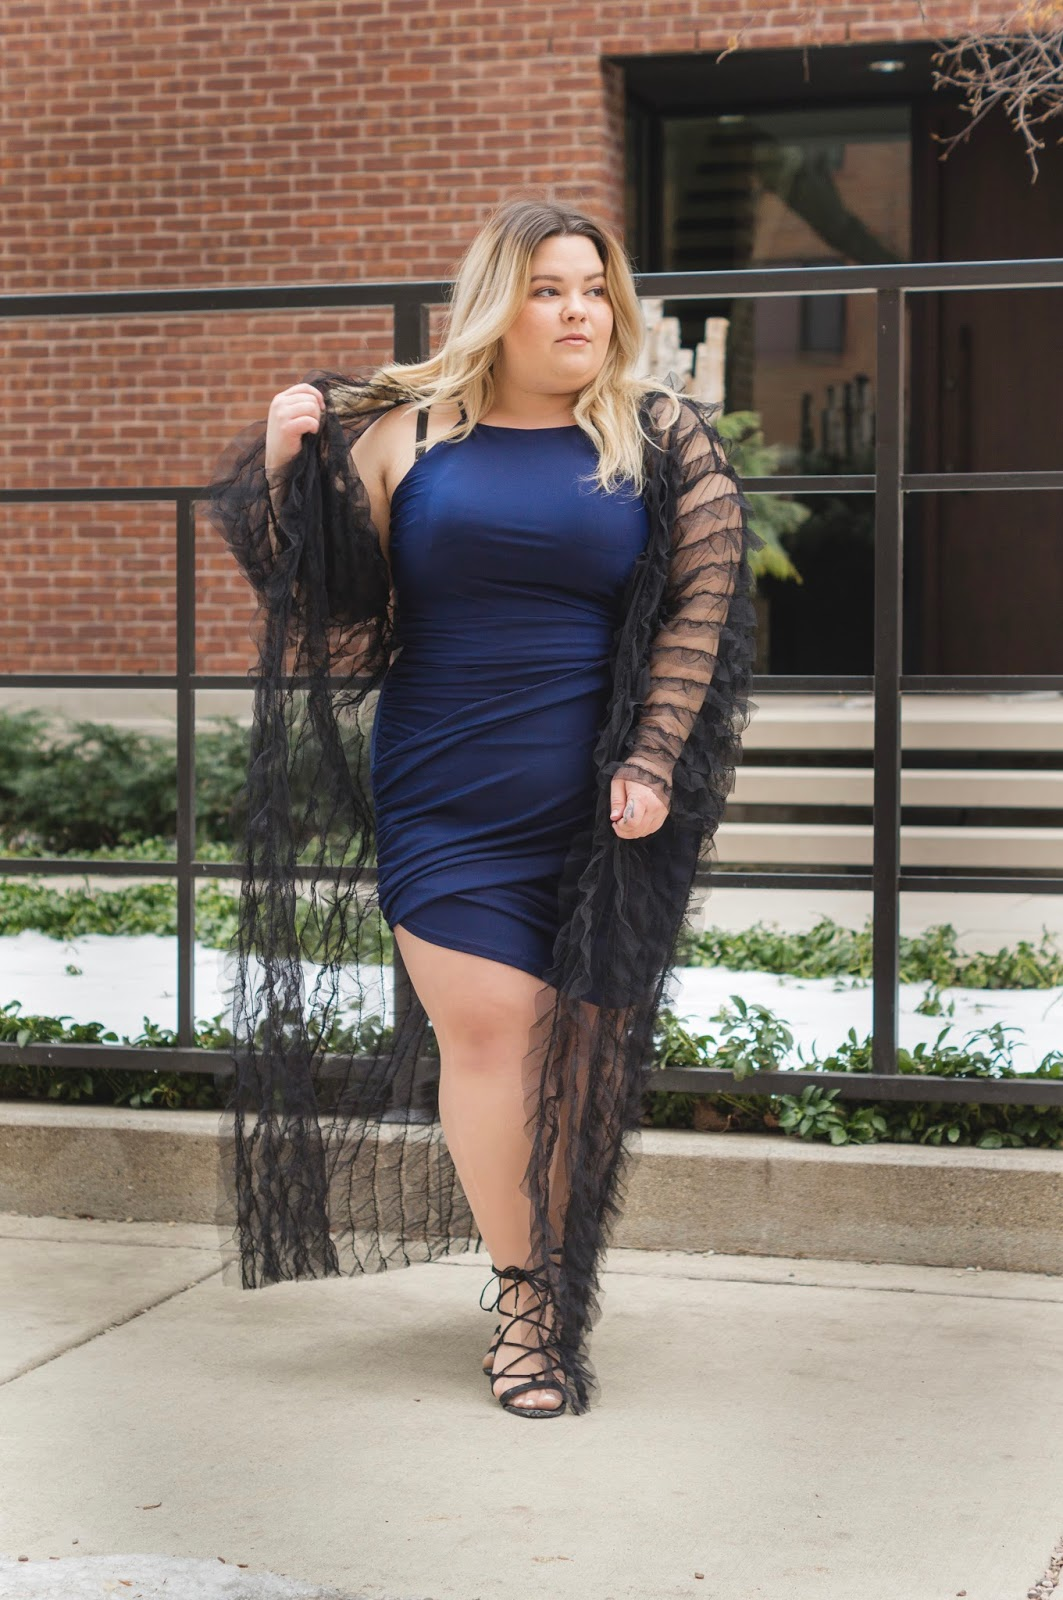 plus size body con, natalie Craig, natalie in the city, Chicago plus size model, Chicago plus size fashion blogger, midwest blogger, fashion nova curve, fashion nova, avant garde plus size fashion, affordable plus size clothing, plus size fashion for women, embrace your curves, skorch magazine, plus model magazine